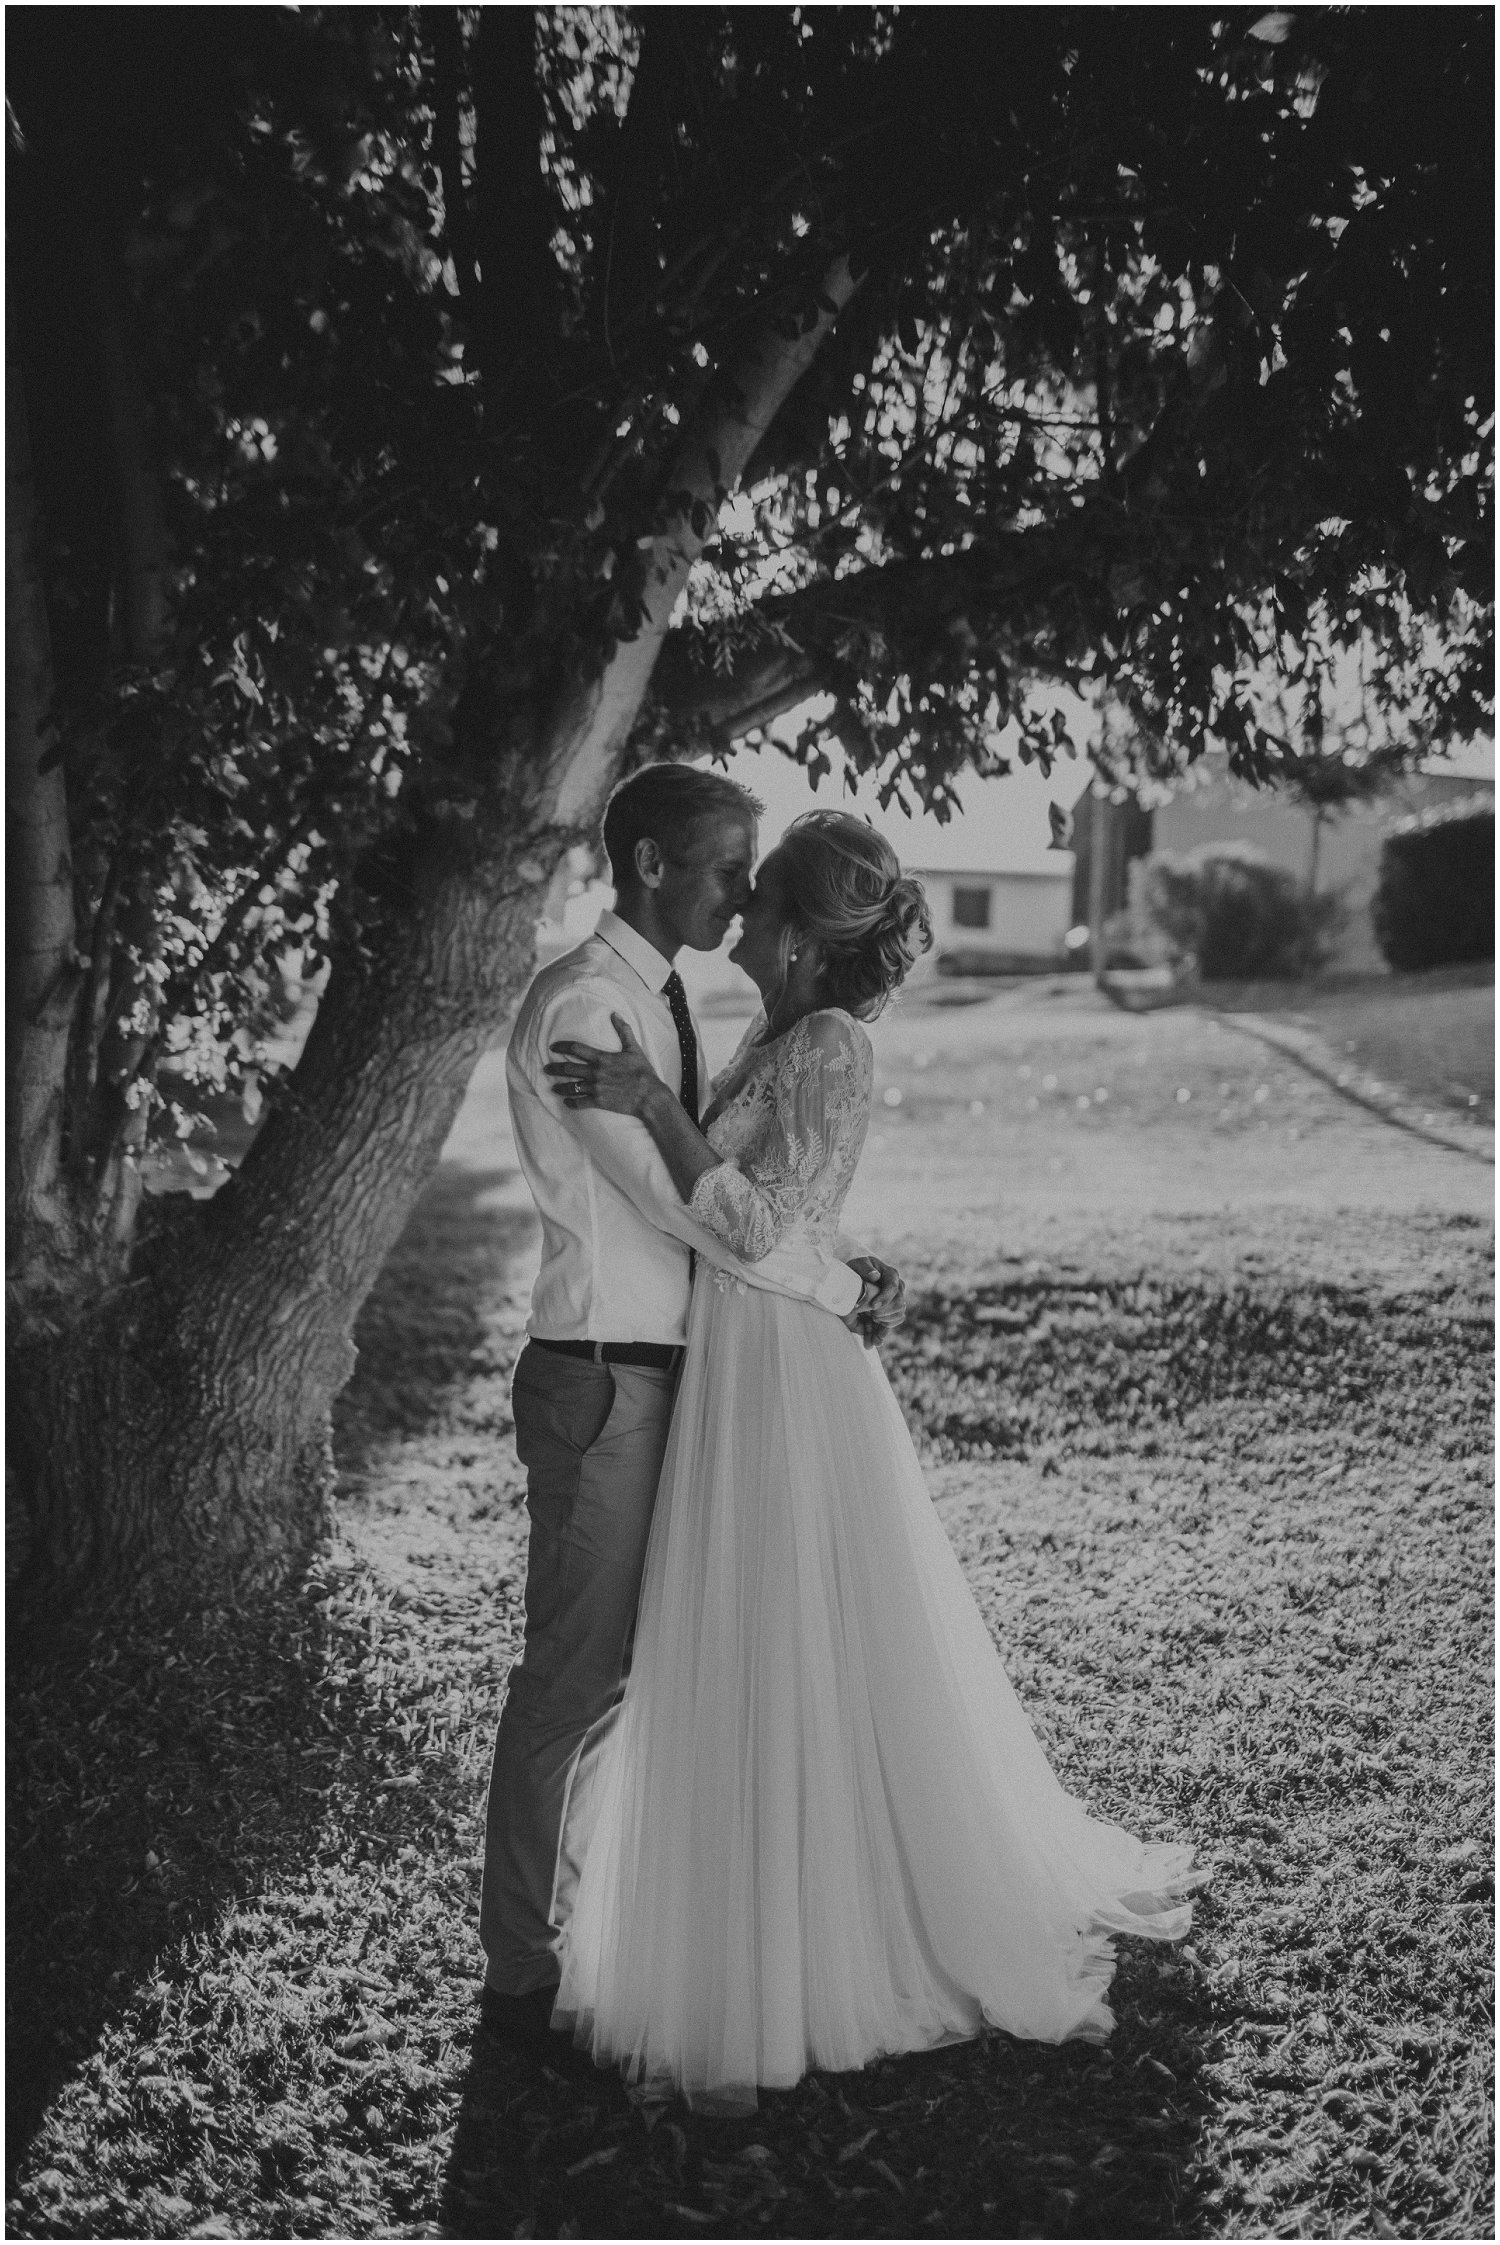 Top Wedding Photographer Cape Town South Africa Artistic Creative Documentary Wedding Photography Rue Kruger_0723.jpg